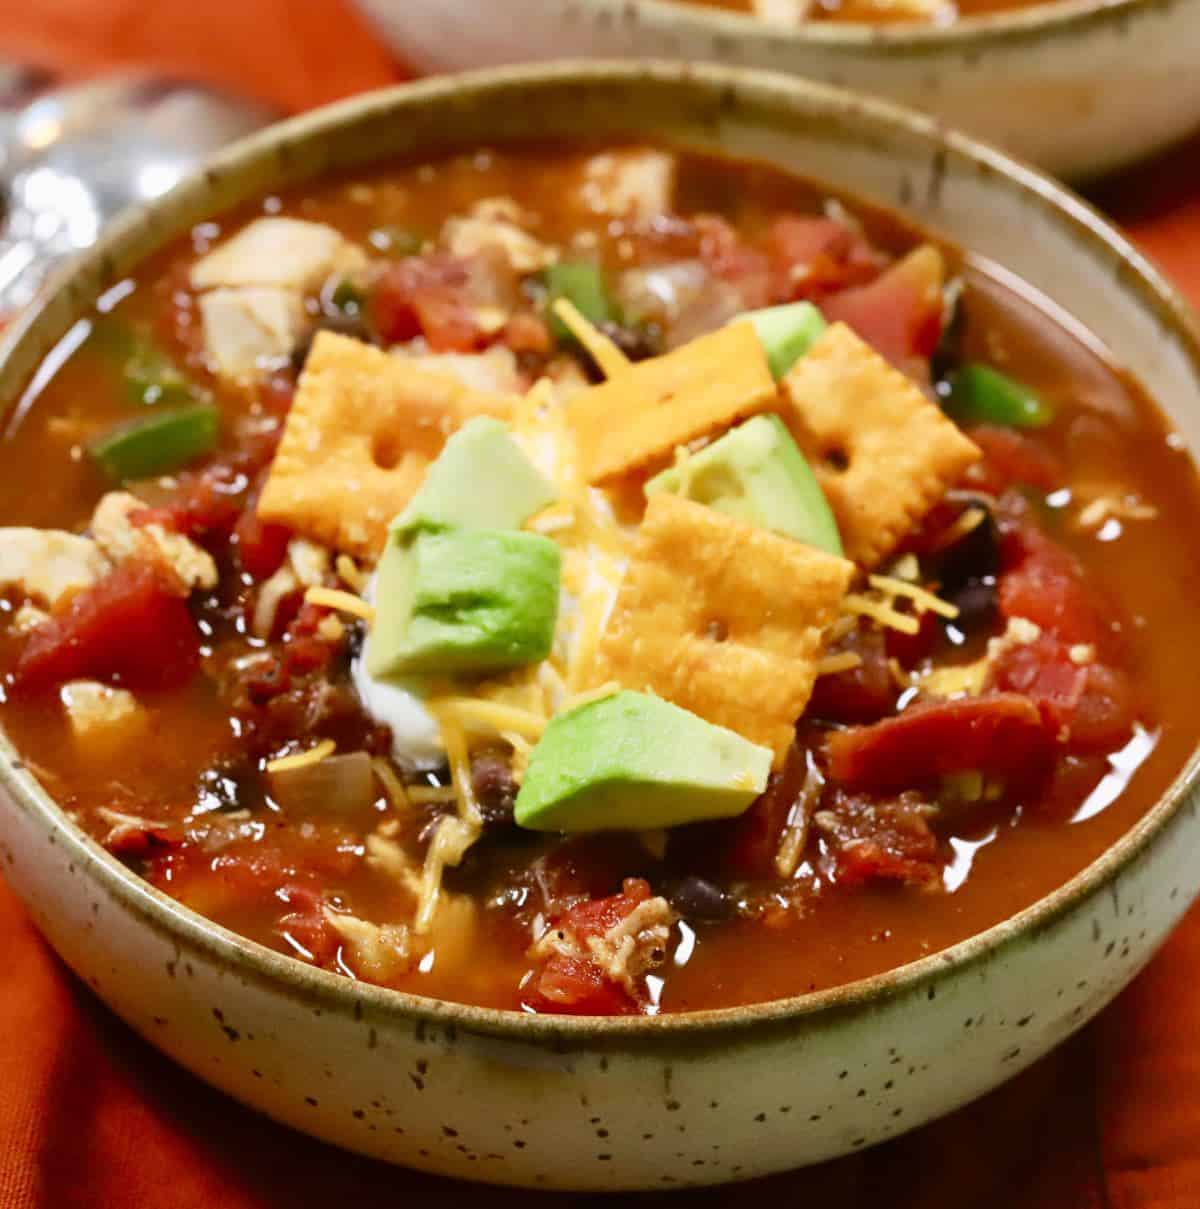 Best and Easiest Turkey Chili in a white bowl garnished with avocado slices.